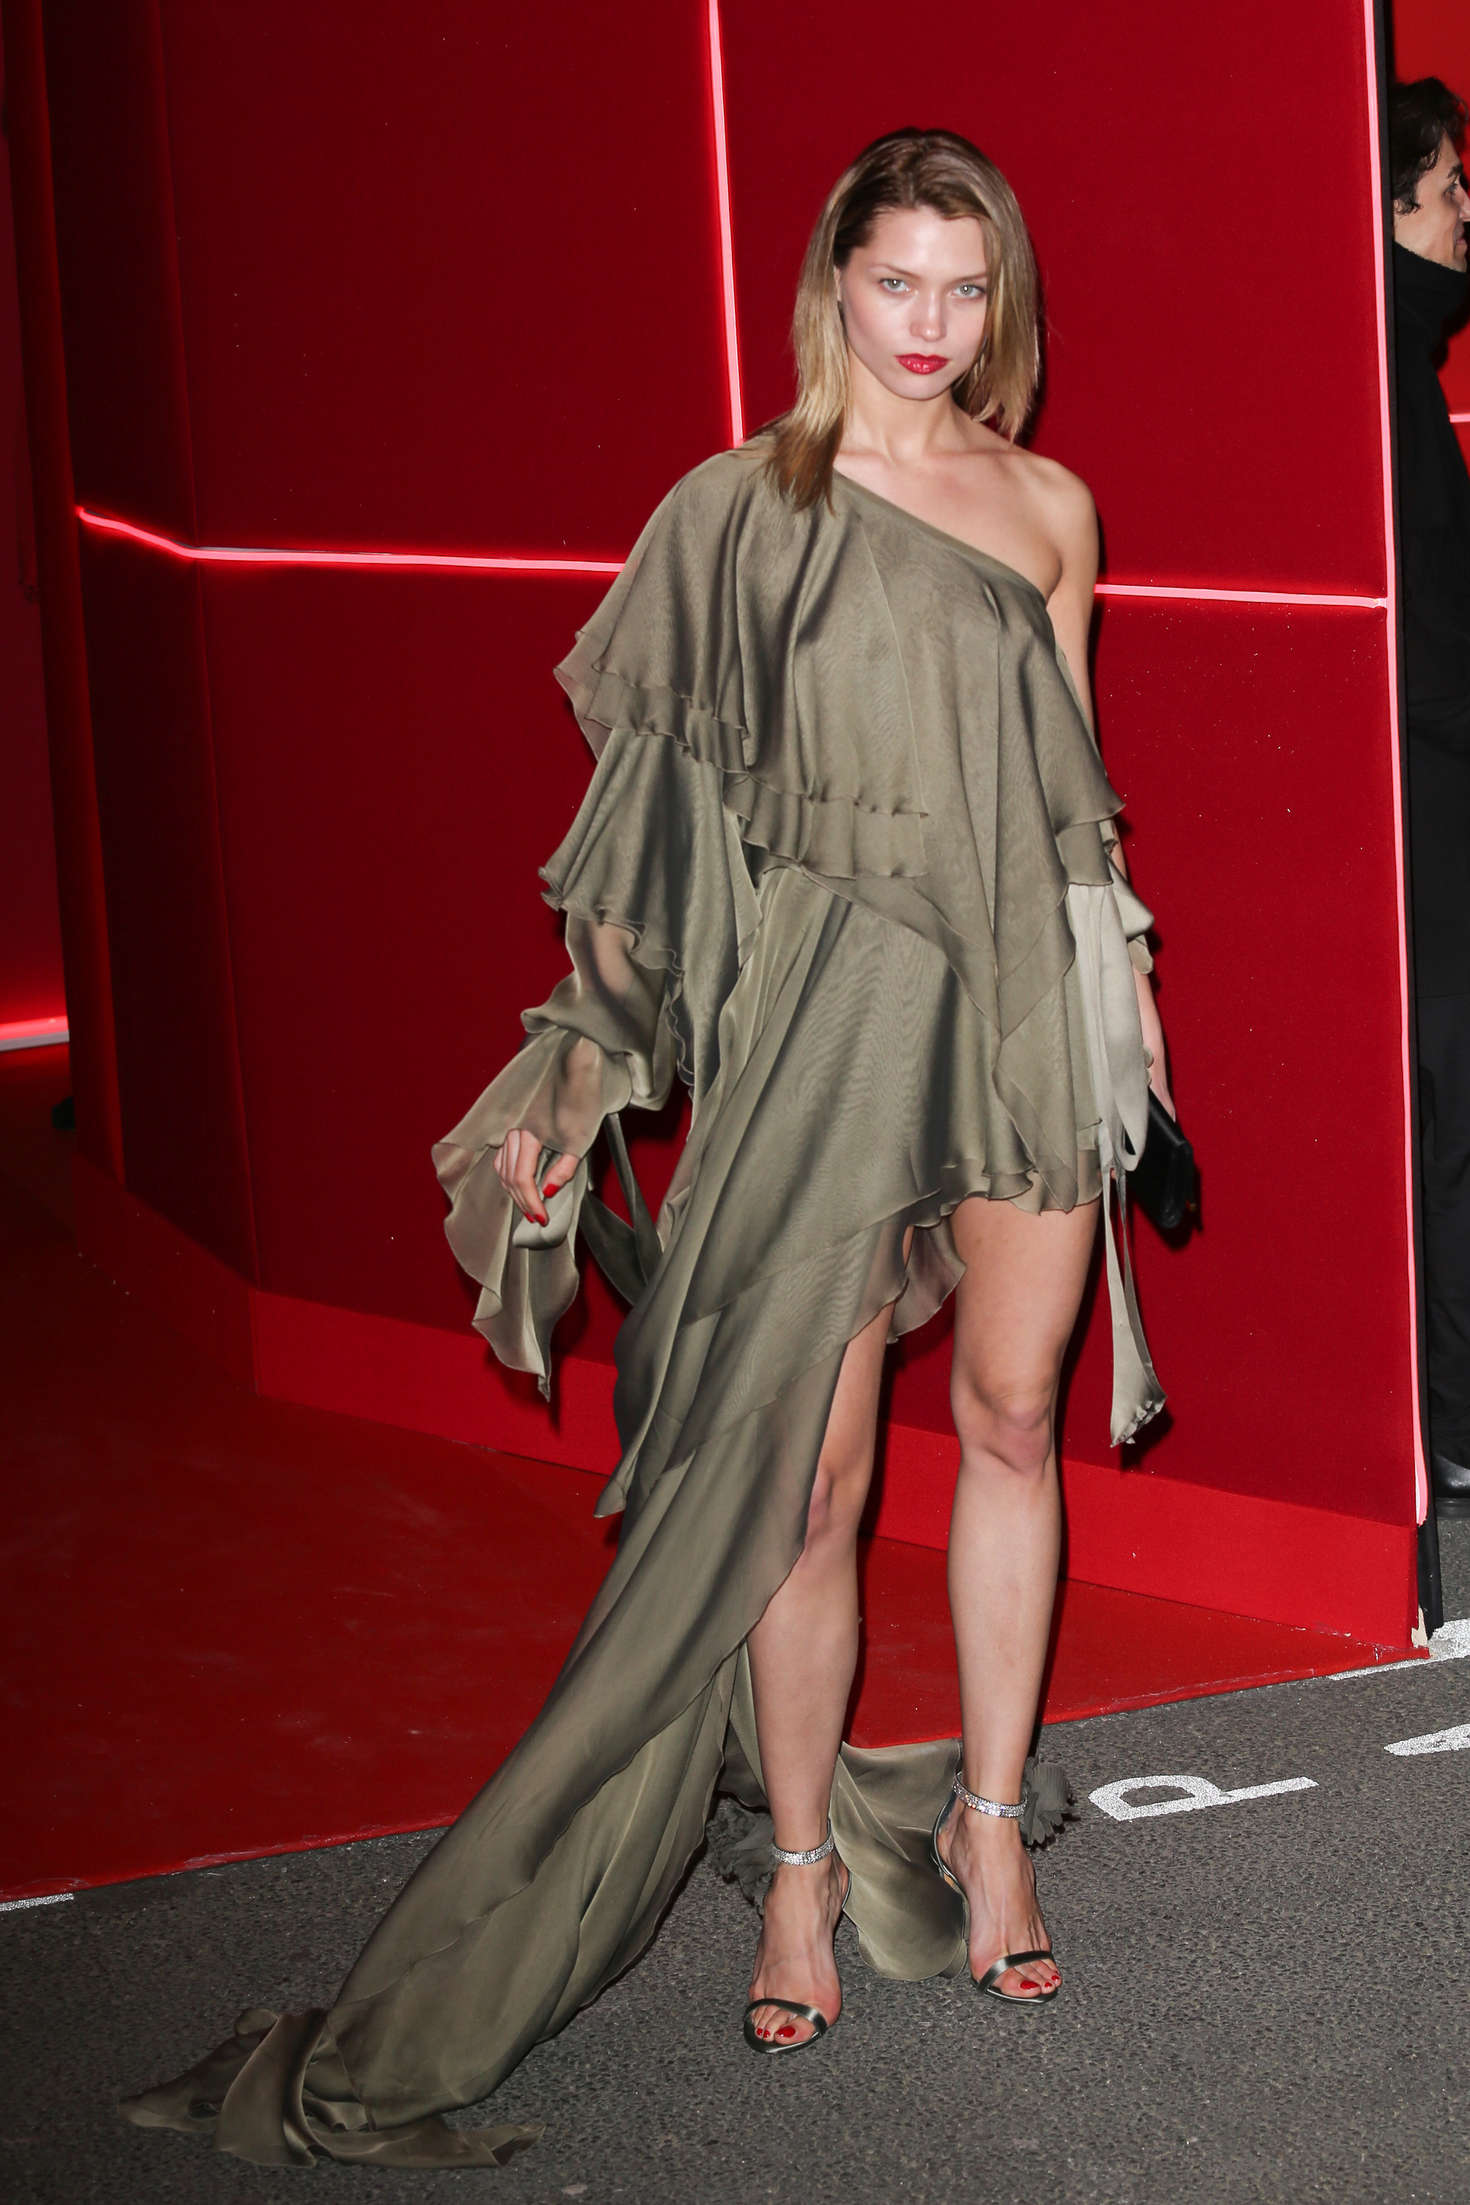 Hana Jirickova Attends at LOreal Red Obsession Party in Paris